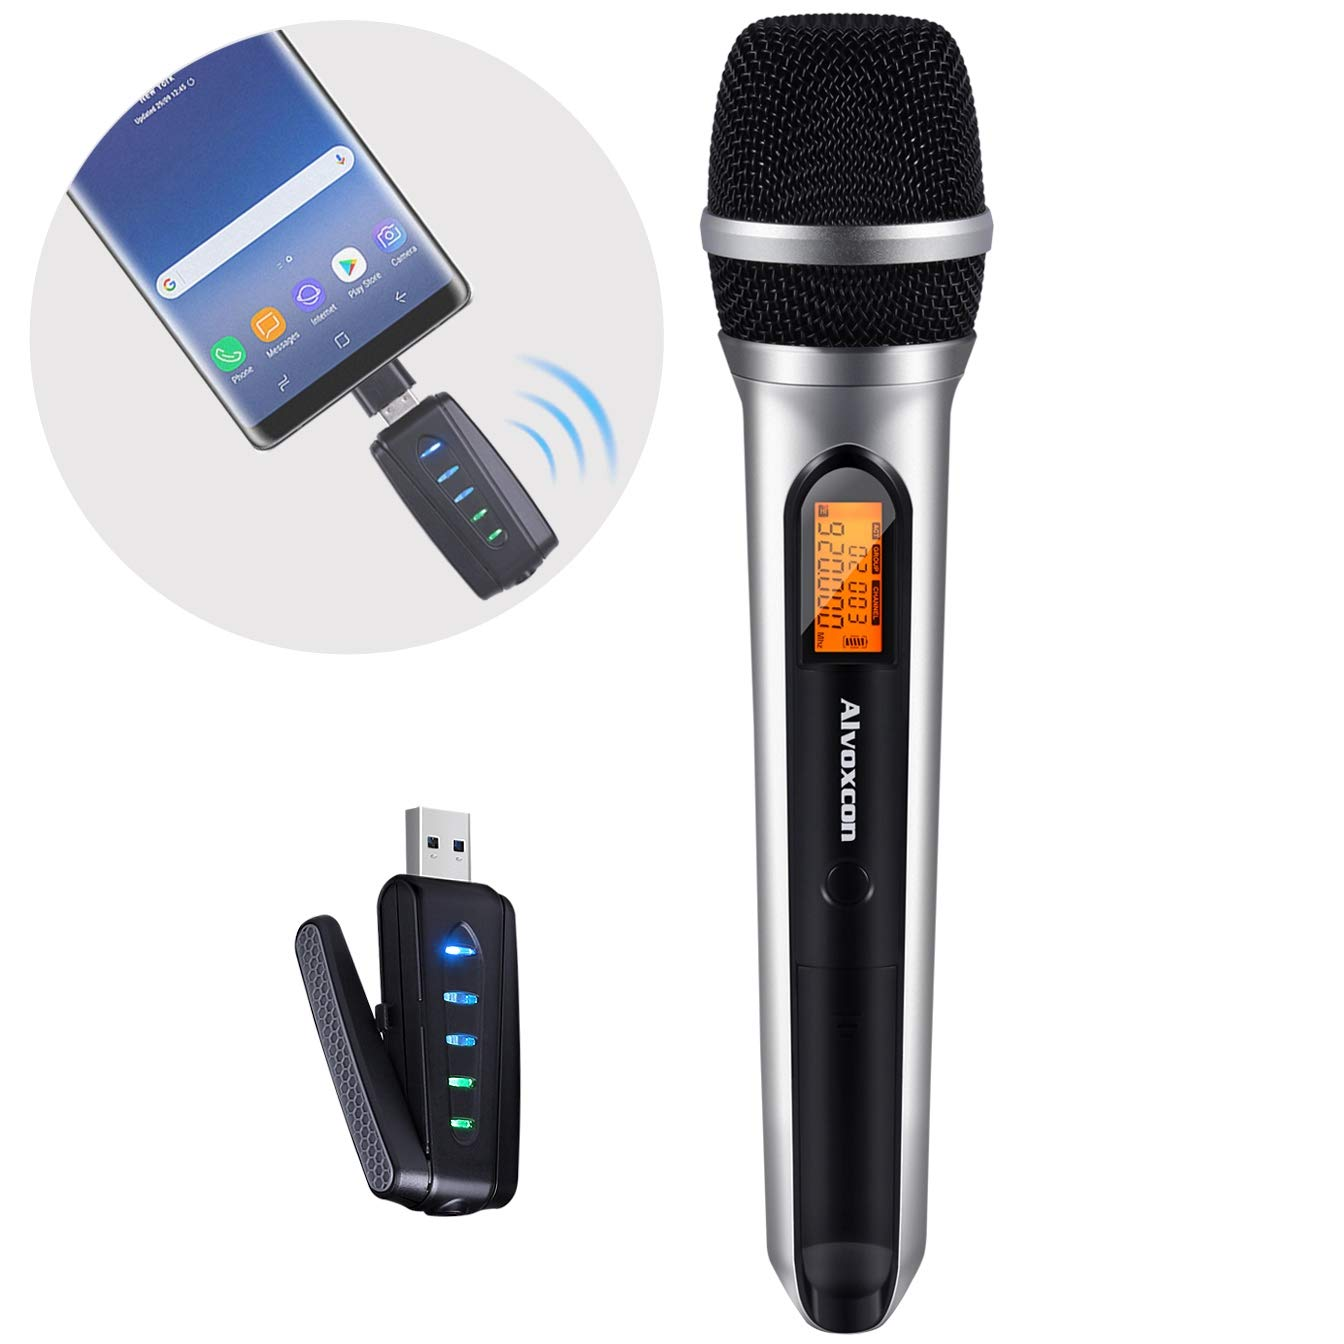 USB Wireless Microphone,Alvoxcon UHF Unidirectional mic for Smartphone,PC computer,Laptop,PA, Podcasting,Conference,Vlogging,Youtube,Vocal Recording,Karaoke Singing,Gaming (System with USB Receiver)